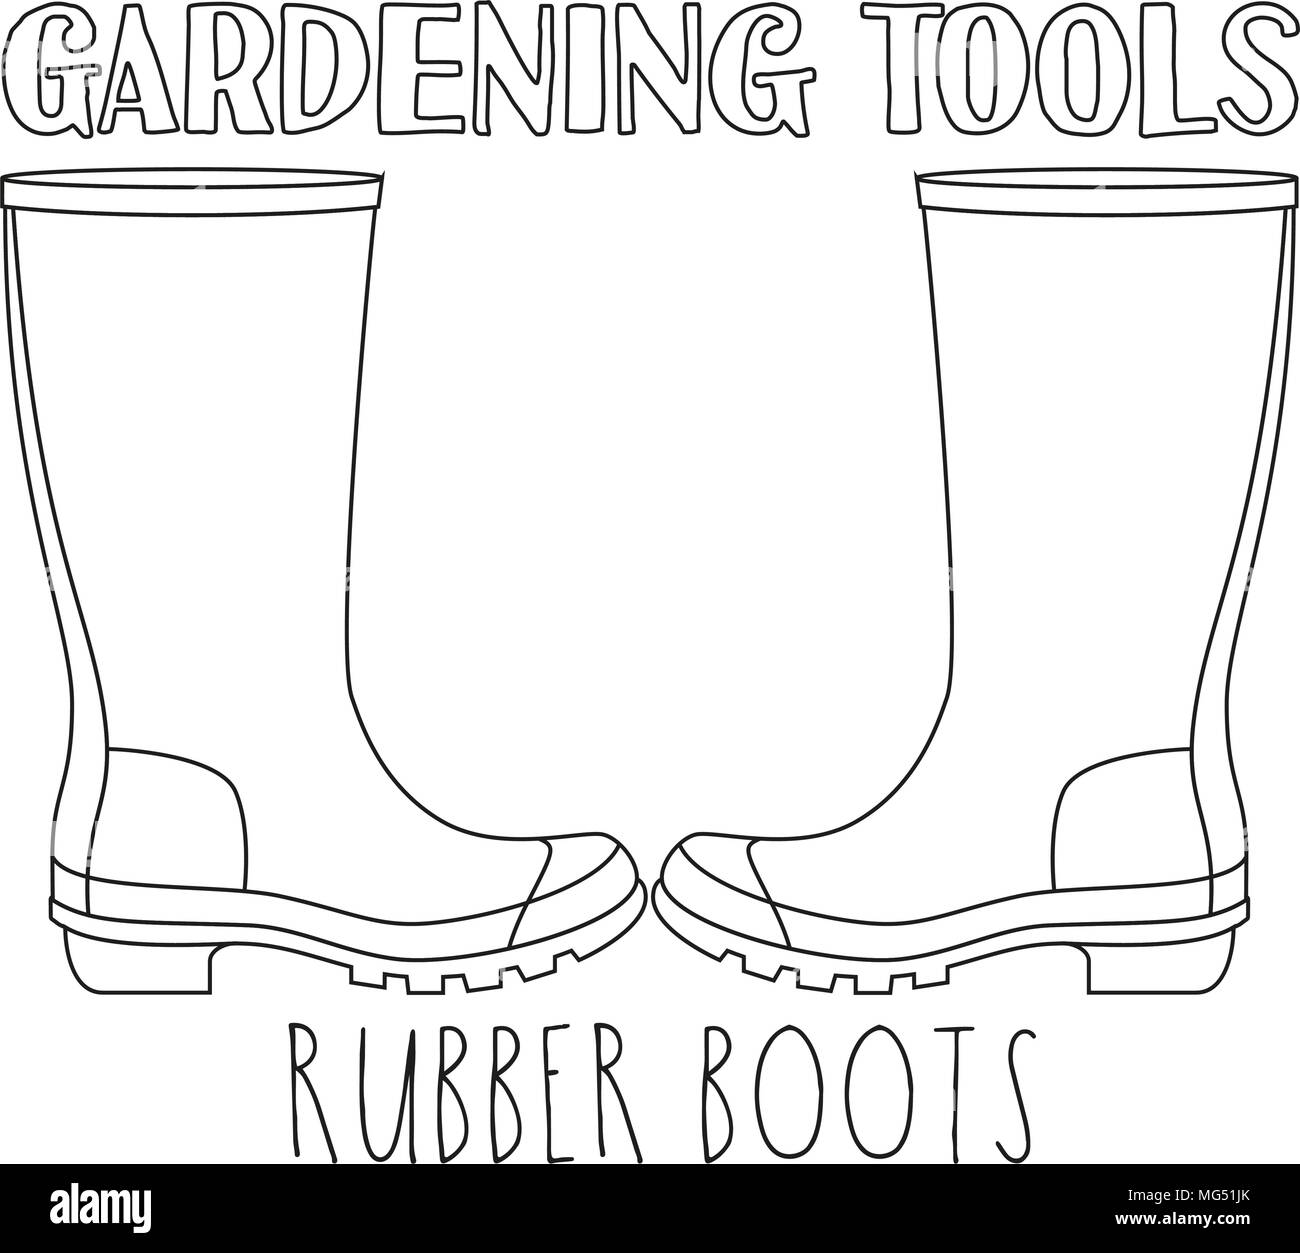 Line Art Black And White Rubber Boots Coloring Book Page For Adults Kids Garden Tool Vector Illustration Gift Card Certificate Sticker Badg